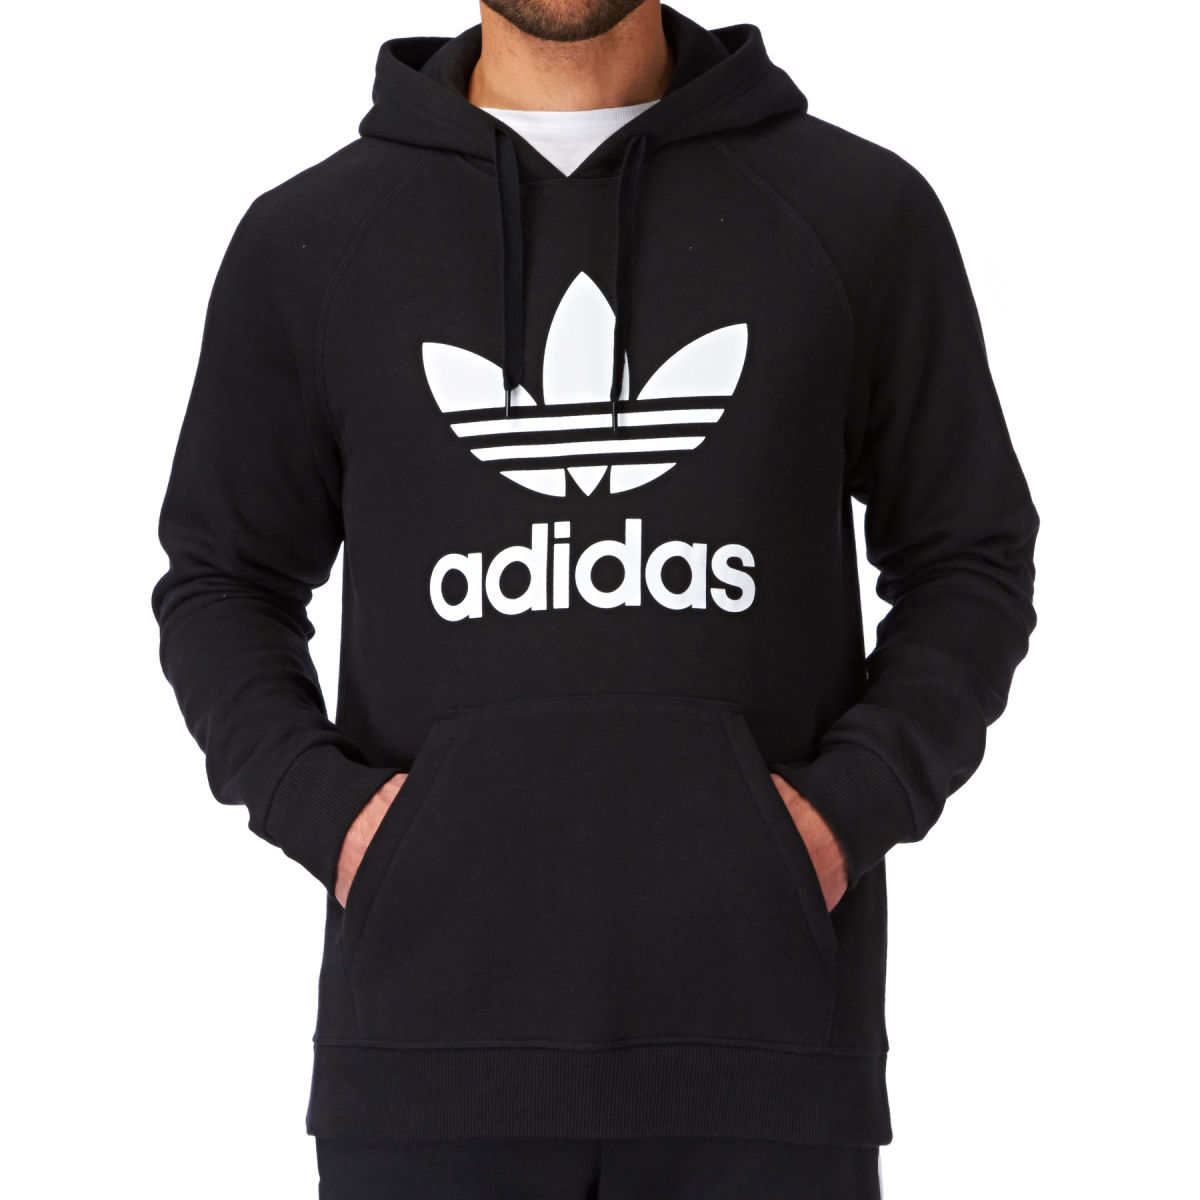 adidas originals original trefoil hoody black. Black Bedroom Furniture Sets. Home Design Ideas